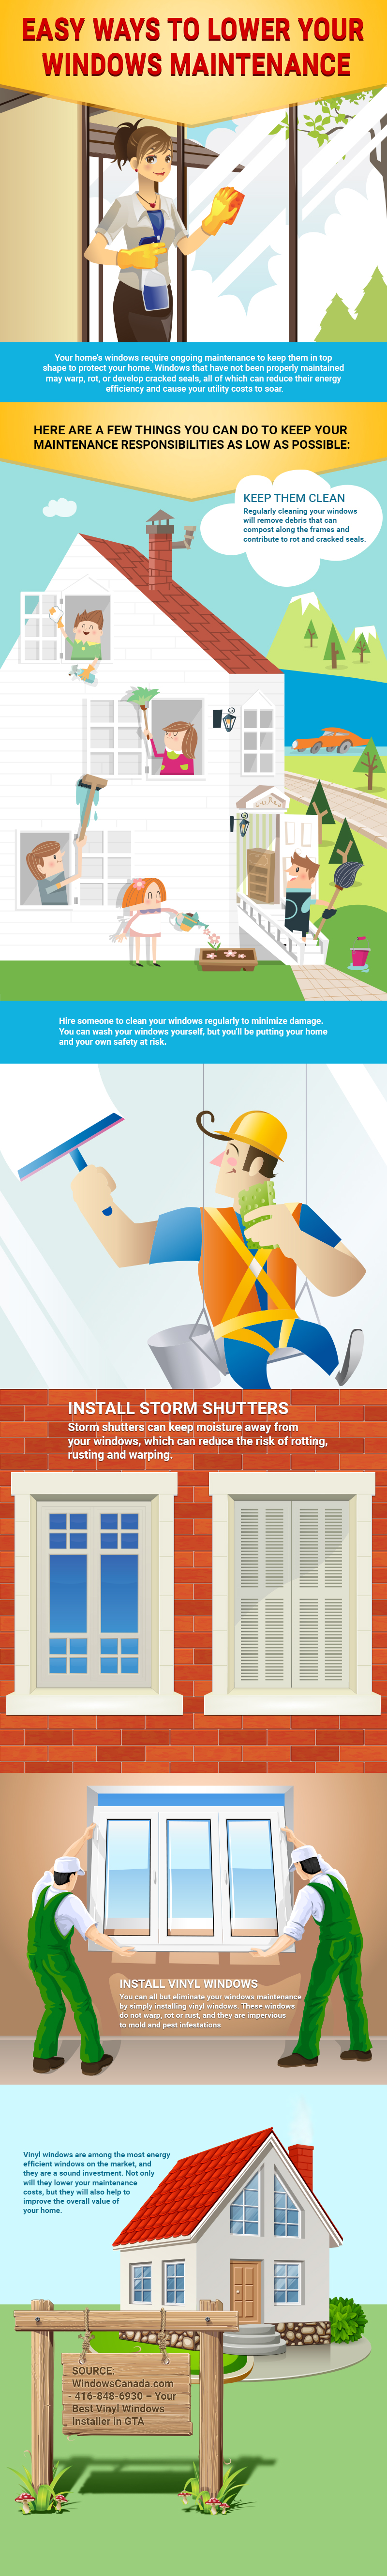 Easy Ways to Lower Your Windows Maintenance - Canadian Choice Windows Infographic